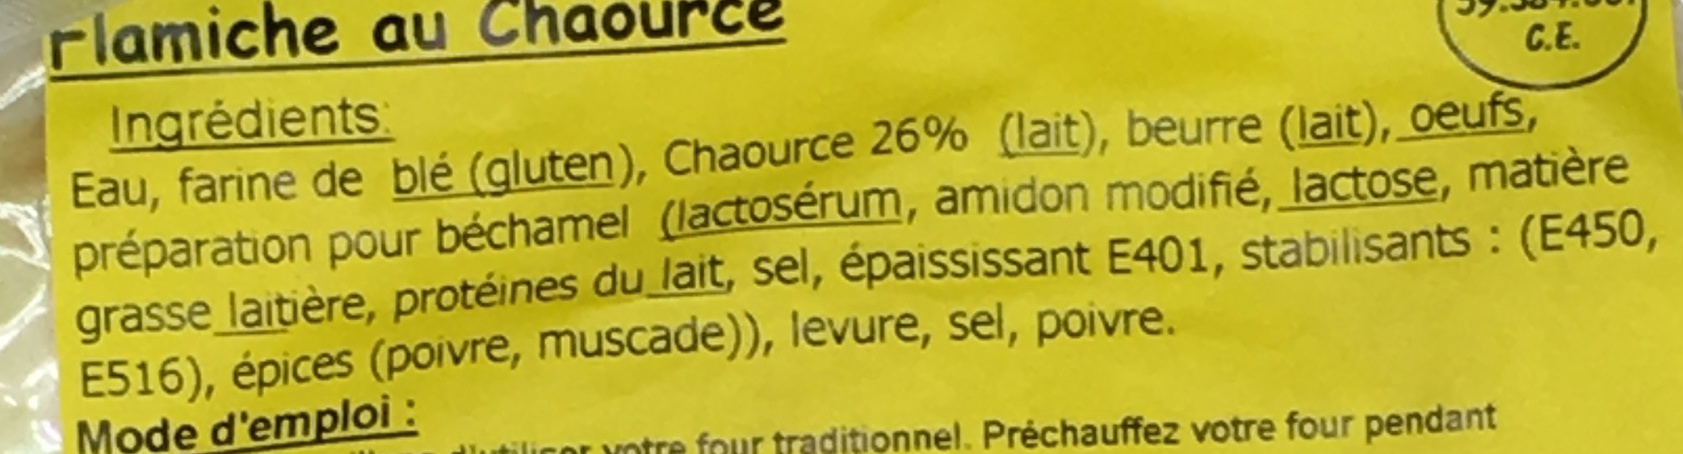 Flamiche au Chaource - Ingredients - fr